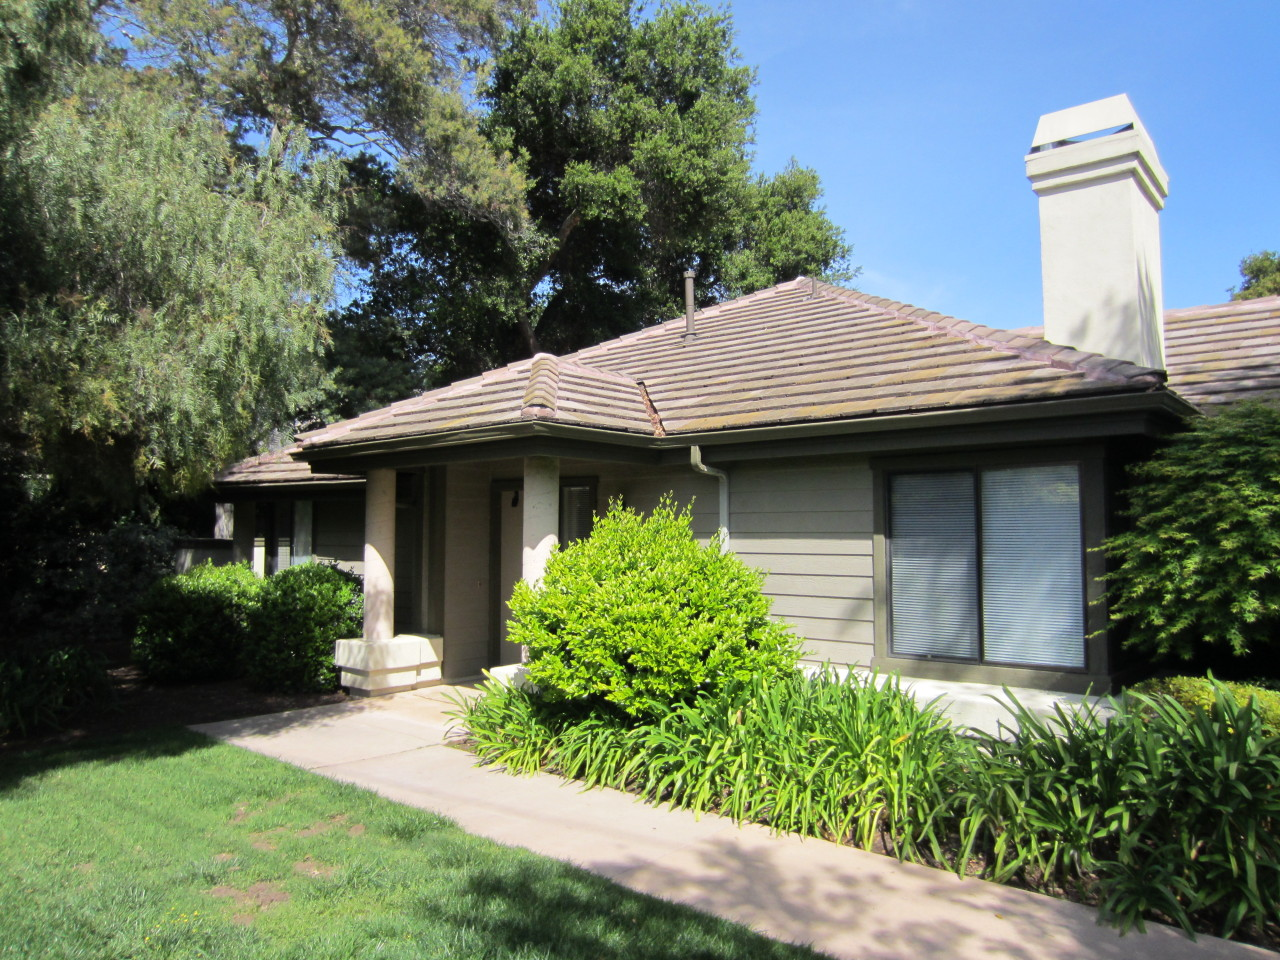 Property photo for 4042 Primavera RD #9 Santa Barbara, California 93110 - 11-4015